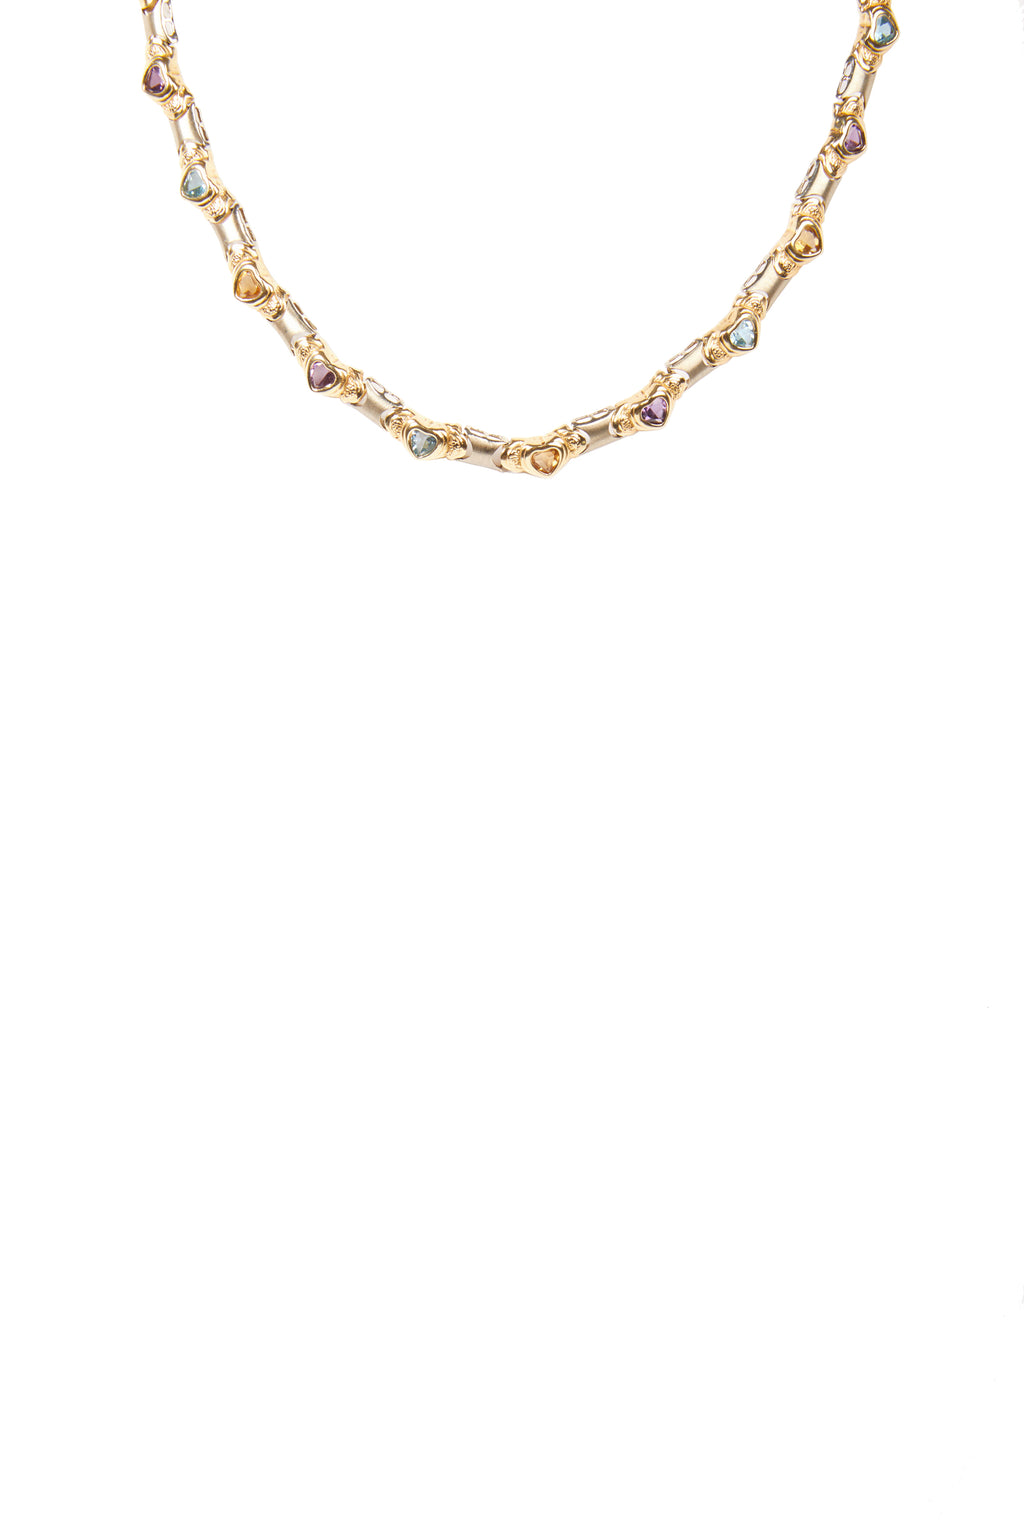 Heart Shape Diamond Gold Chocker Necklace